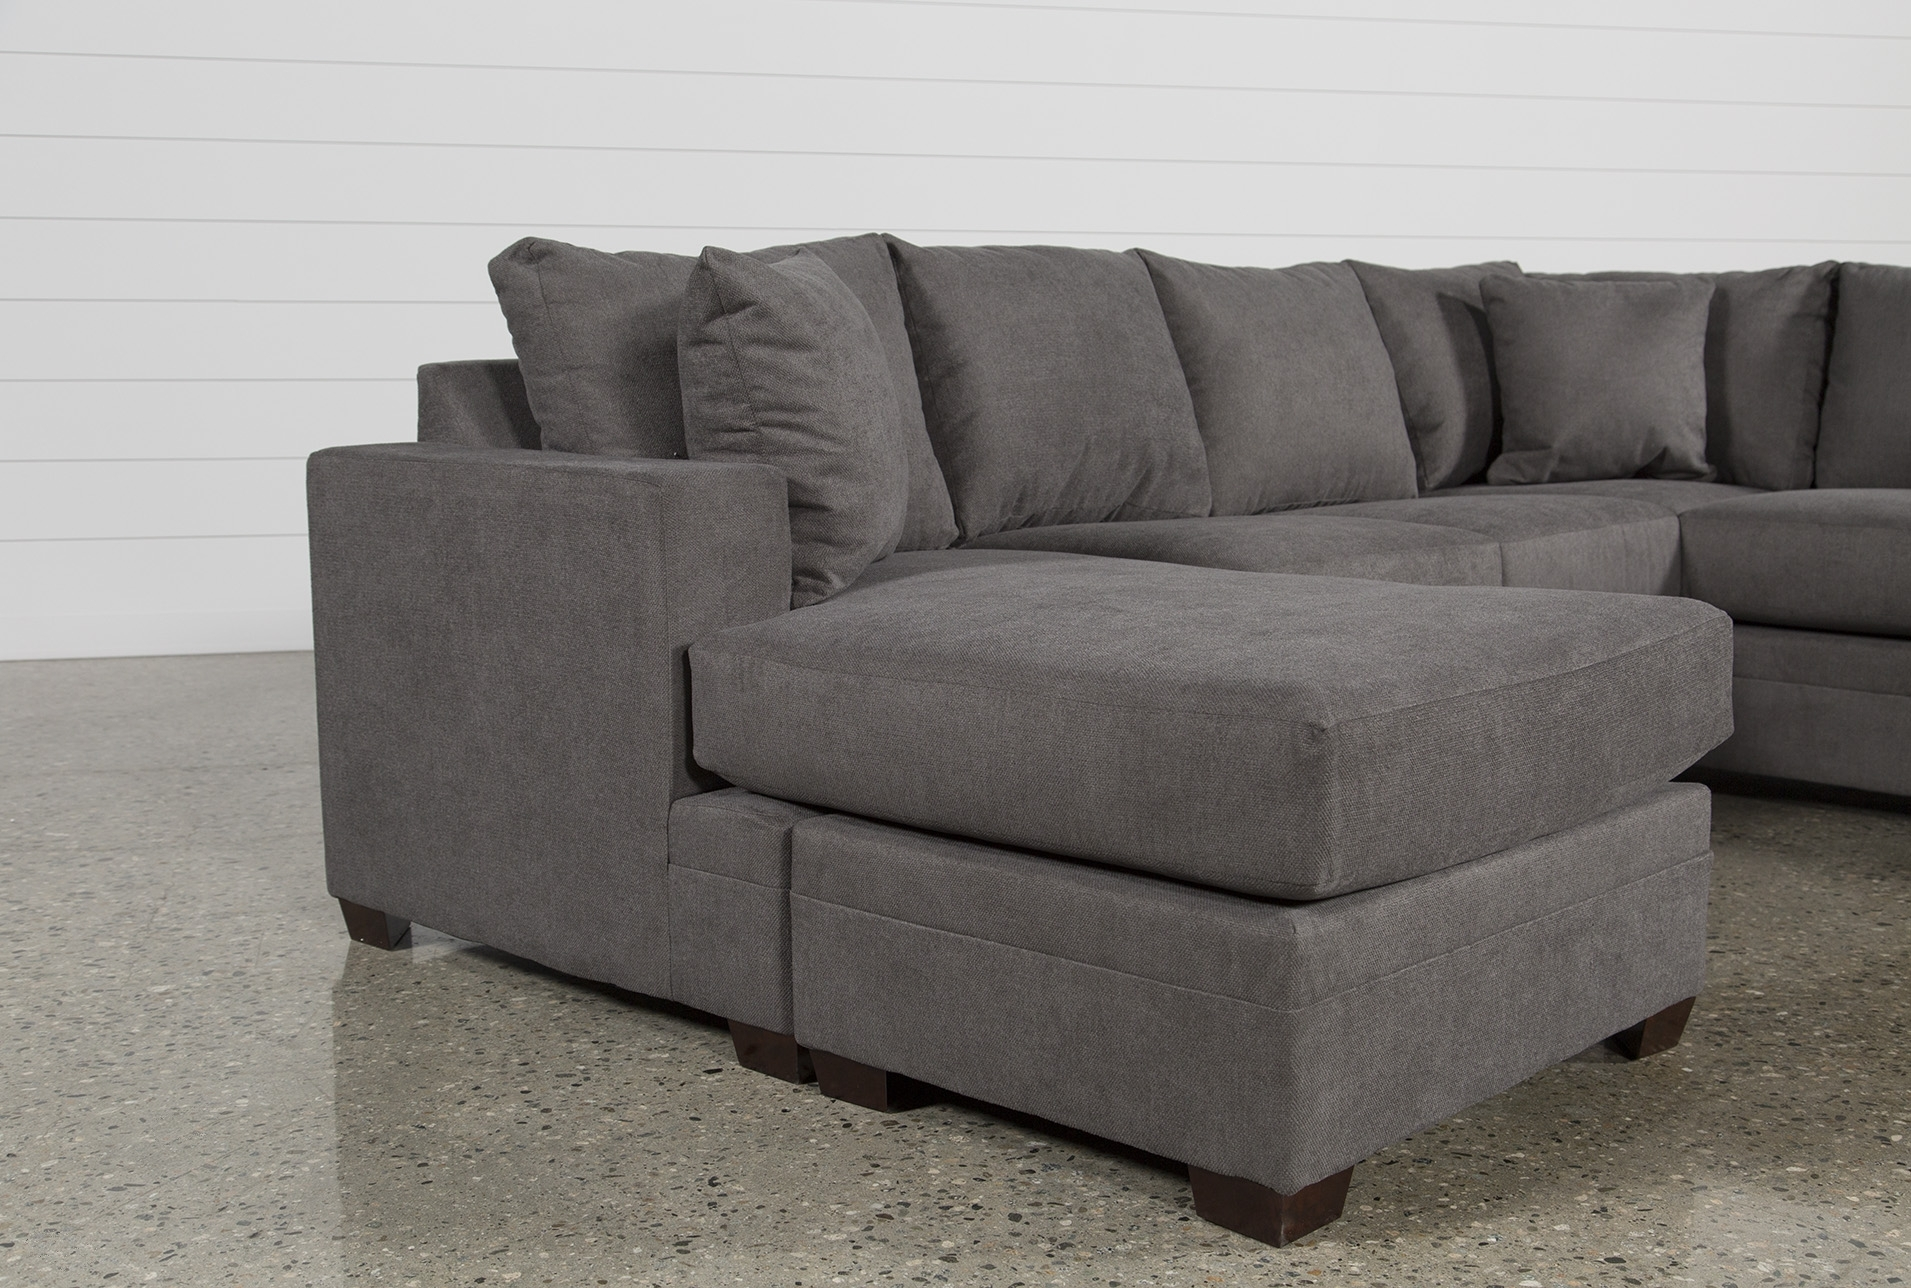 Kerri 2 Piece Sectional W/laf Chaise | Products | Pinterest With Regard To Kerri 2 Piece Sectionals With Laf Chaise (View 6 of 25)